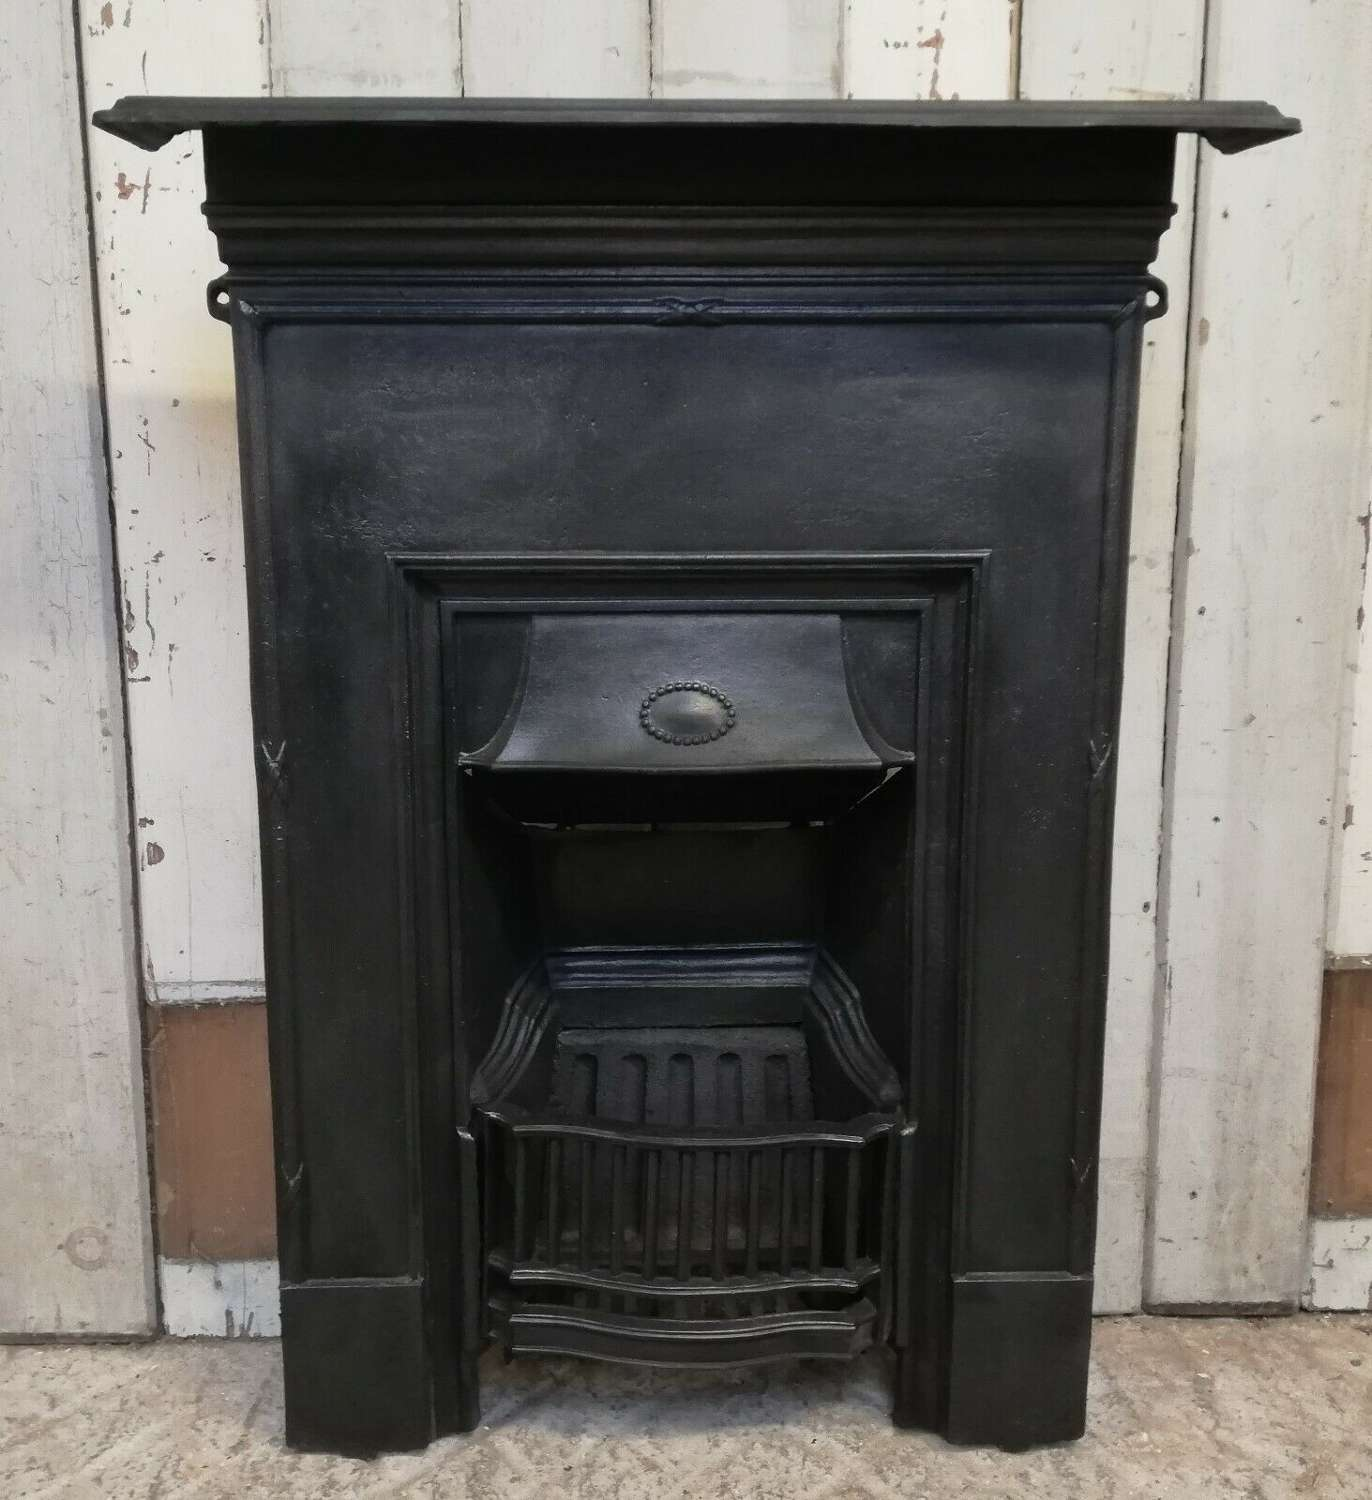 FC0064 AN ATTRACTIVE EDWARDIAN CAST IRON COMBINATION BEDROOM FIRE